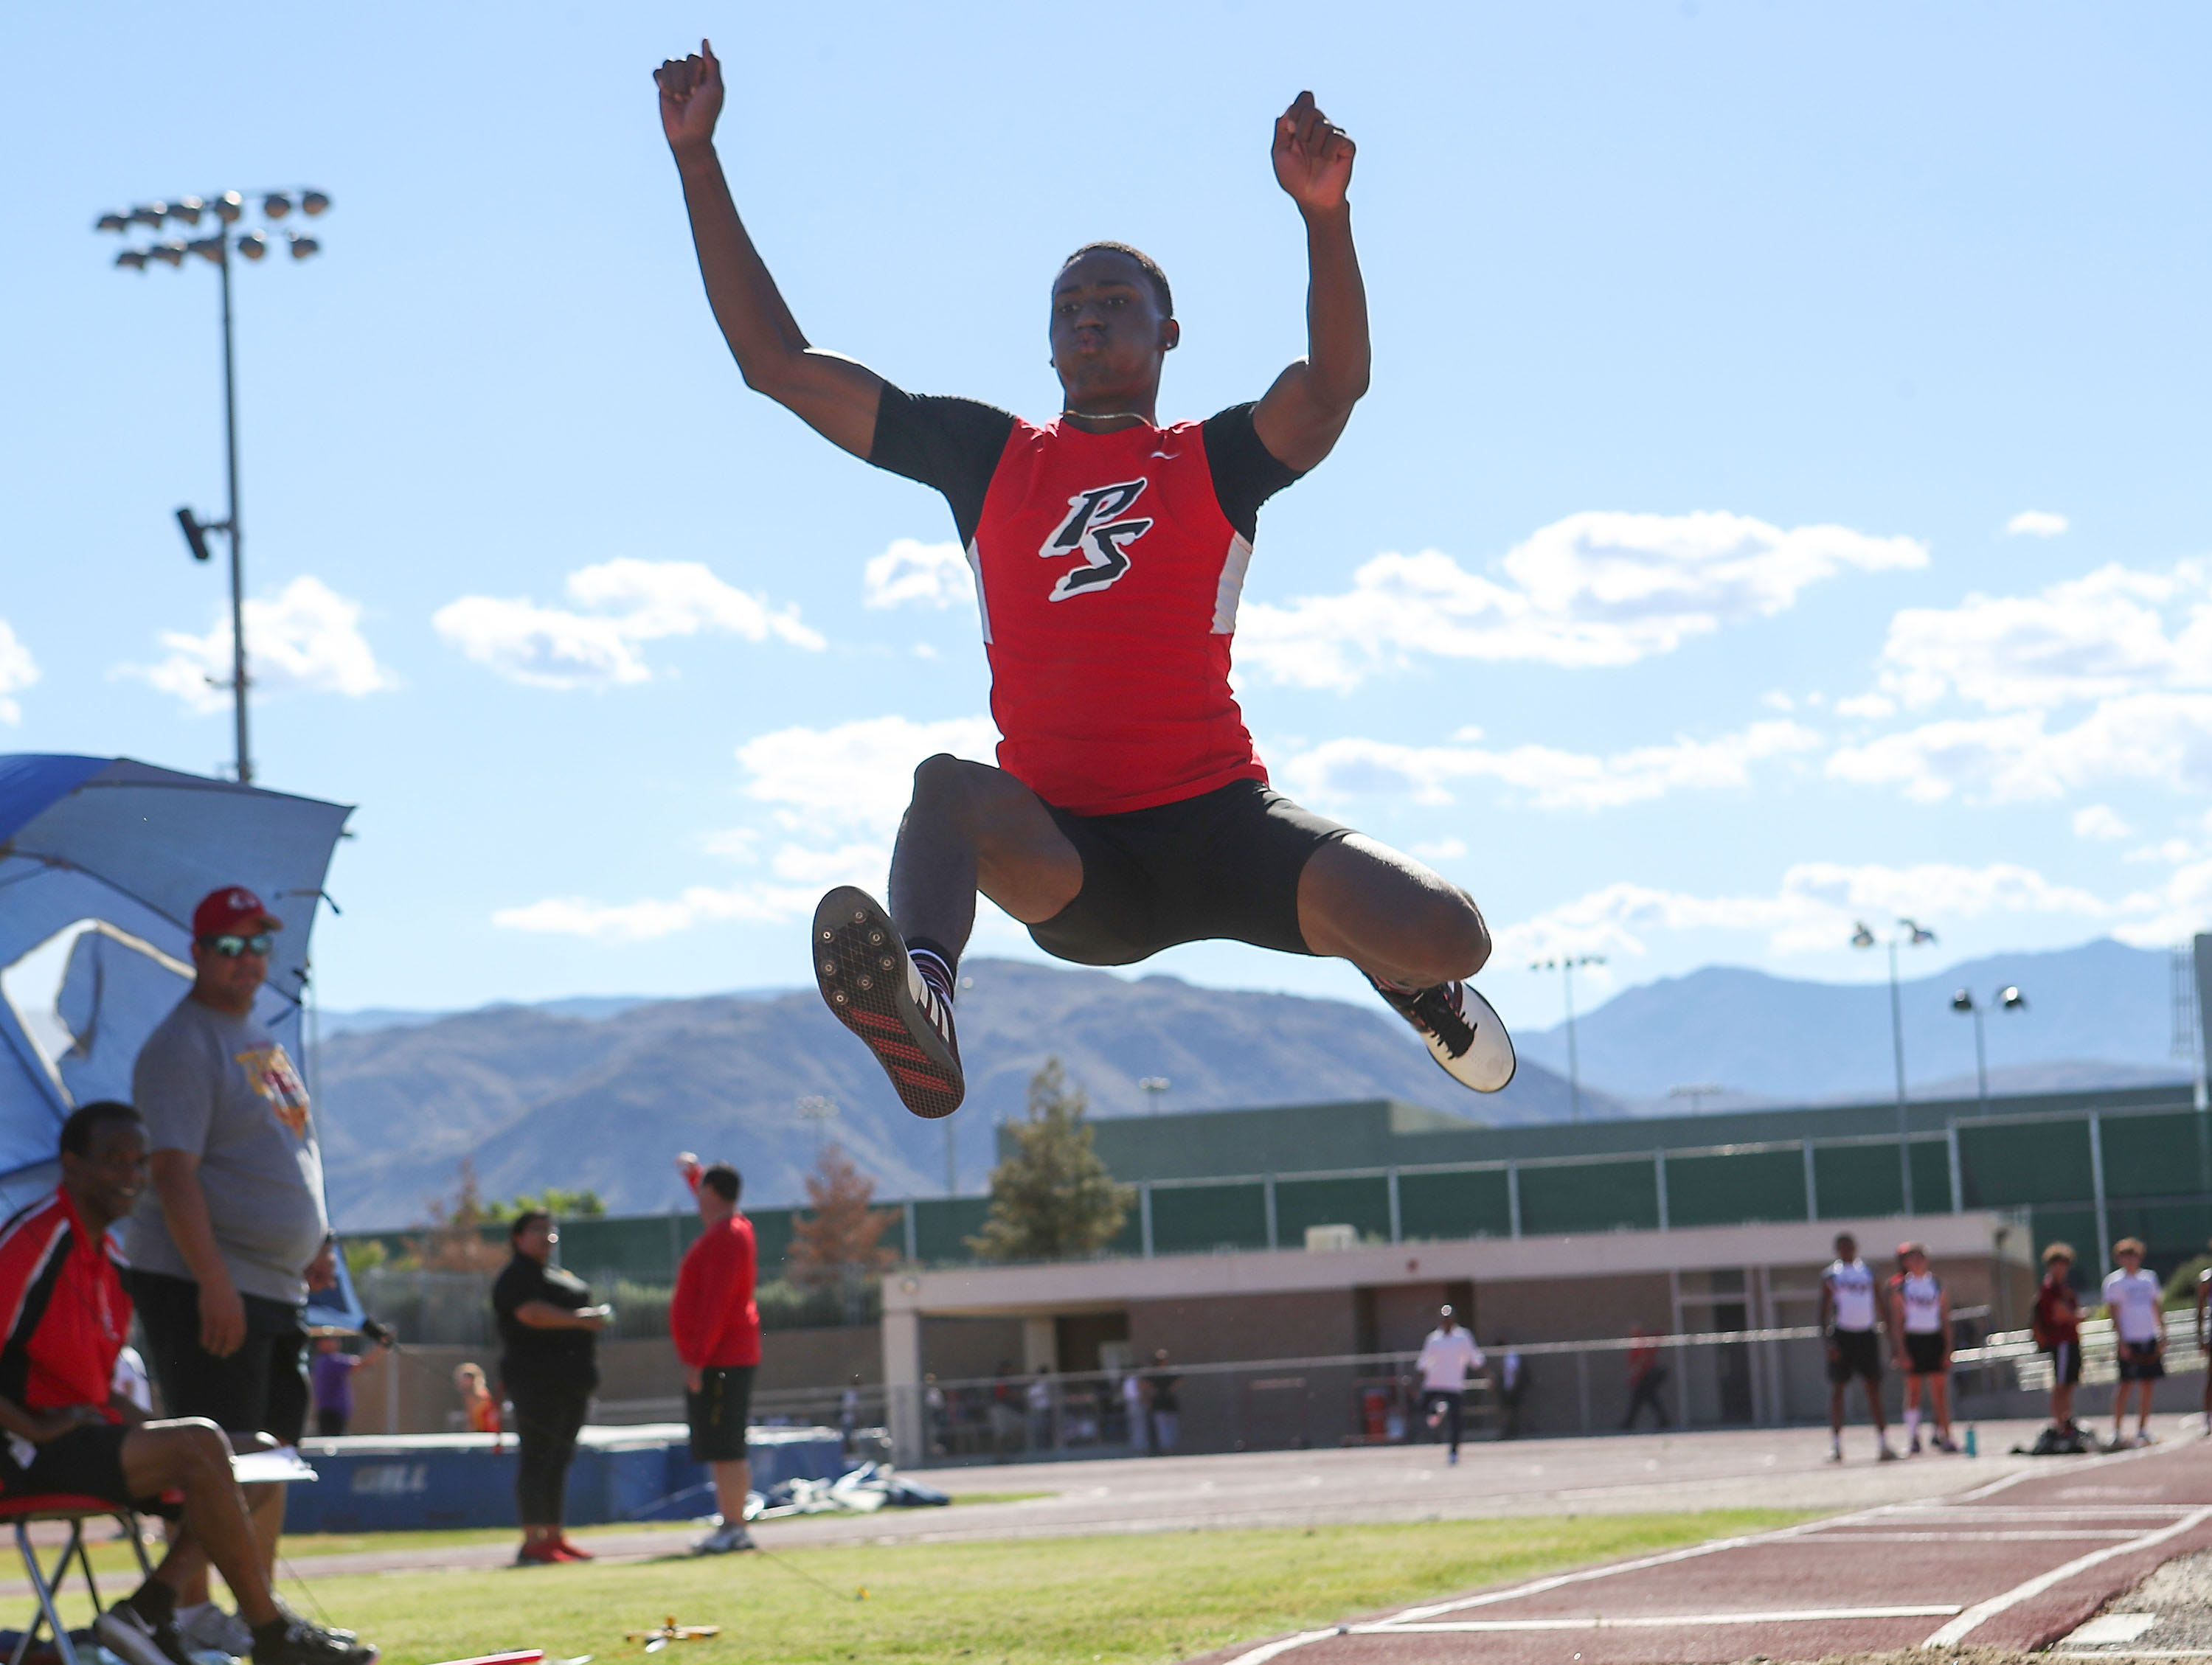 Damion Loman wins the long jump during the Desert Empire League track championships at Palm Desert High School, April 23, 2019.